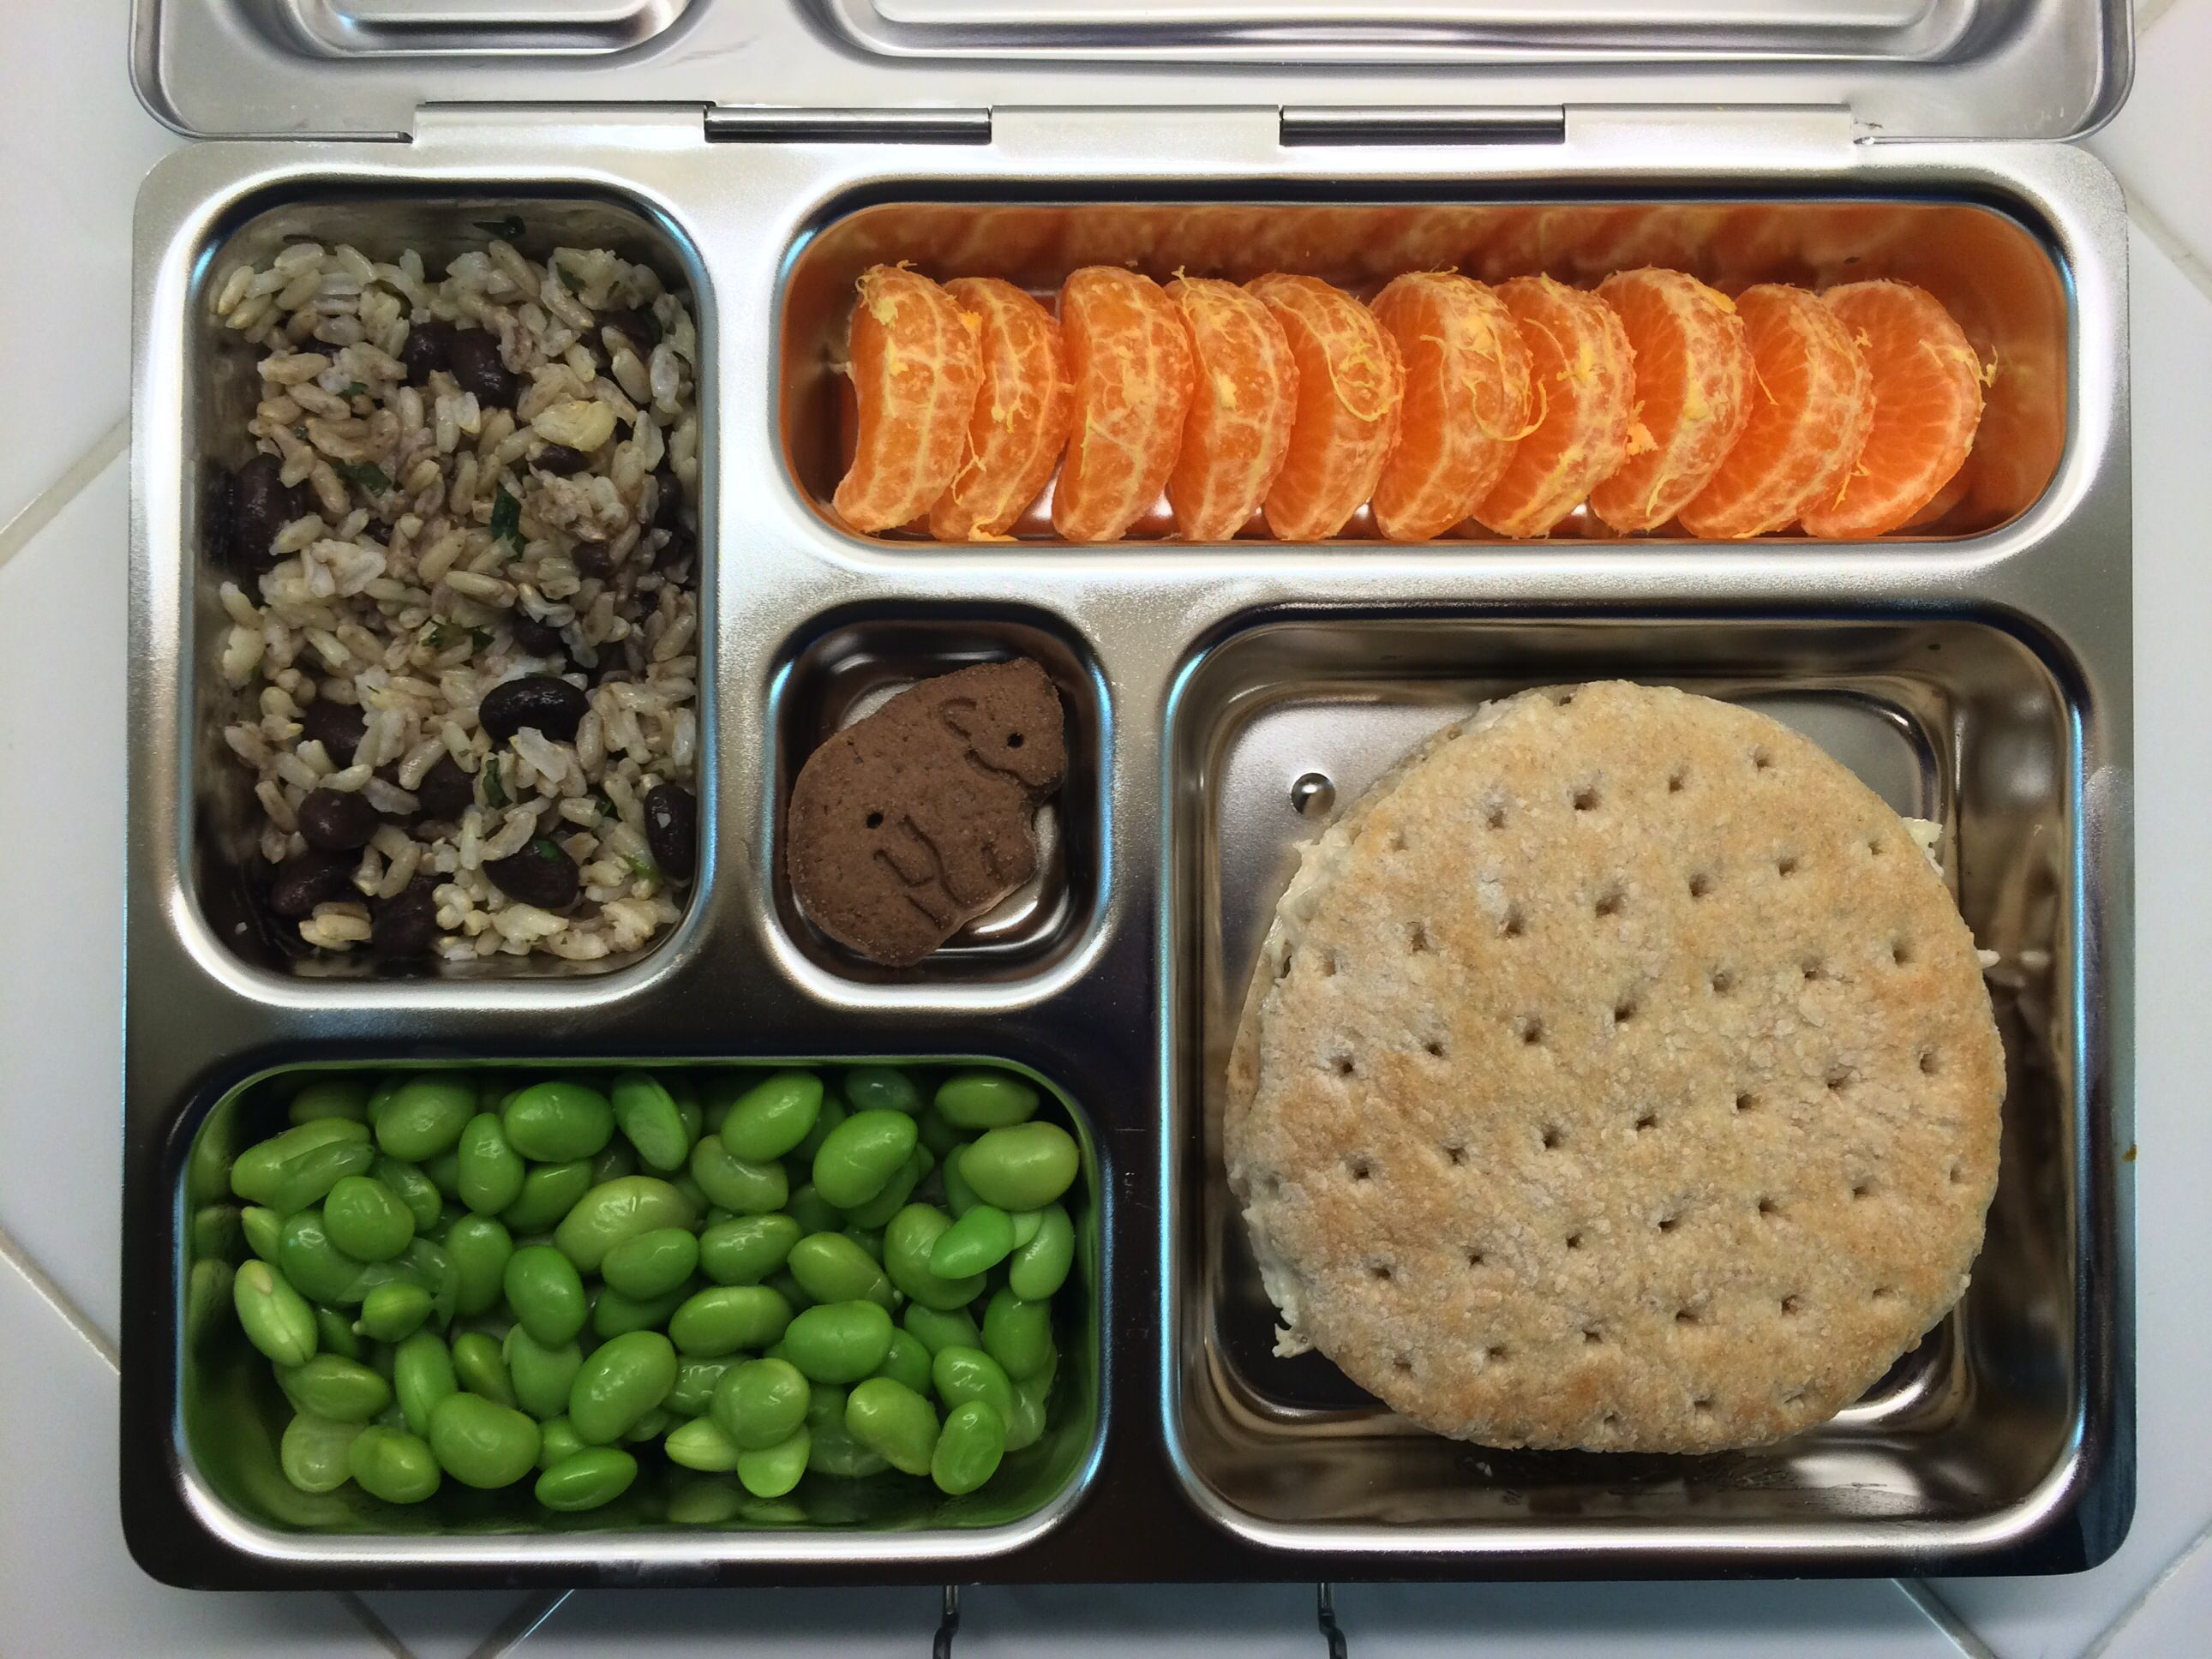 Lunch In A Box Beans And Rice Edamame Animal Cookie Clementines Chicken Salad